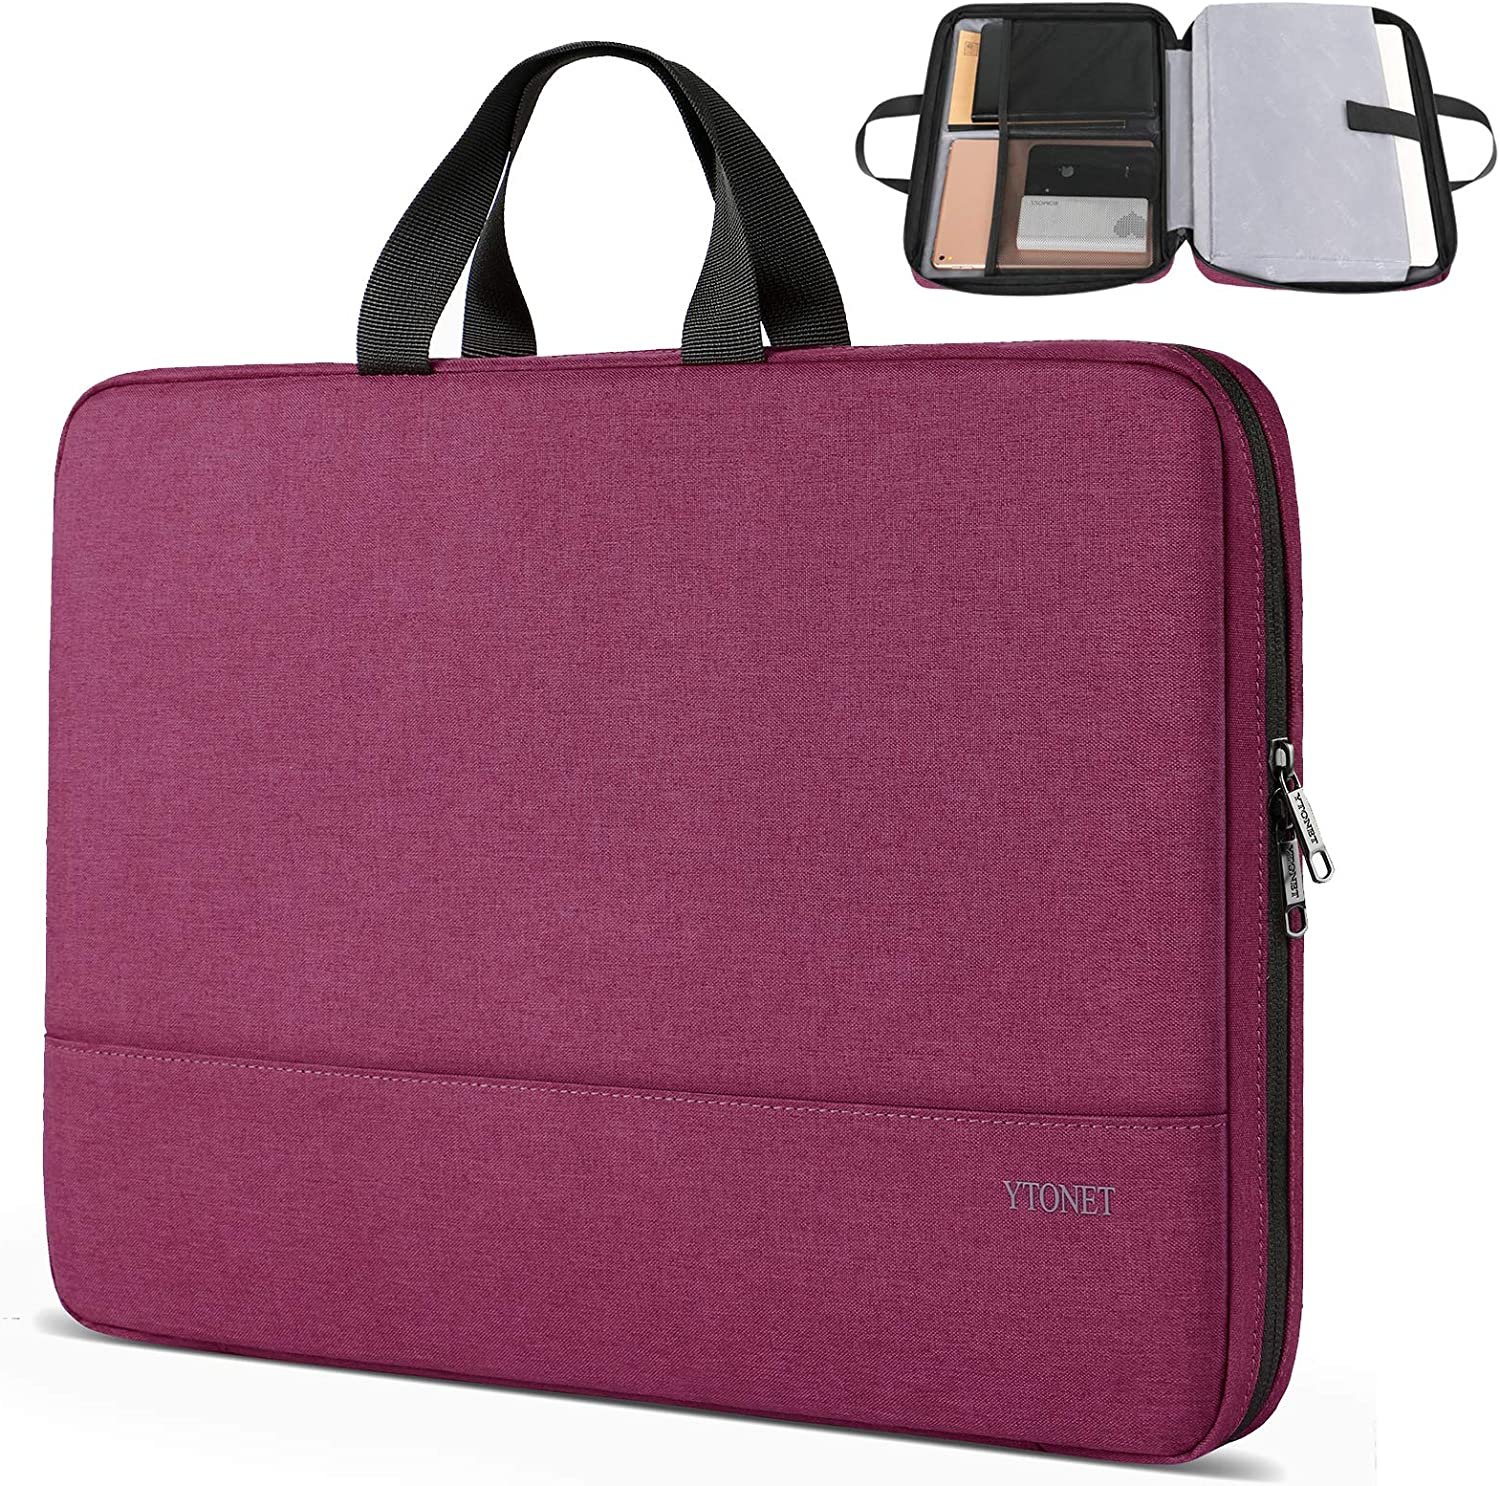 Laptop Sleeve Case, 13.3 inch TSA Slim Laptop Case, Durable Business Briefcase Water Resistant Laptop Case for 13-13.3 inch MacBook Pro, MacBook Air, HP Dell Lenovo Notebook, Purple Red